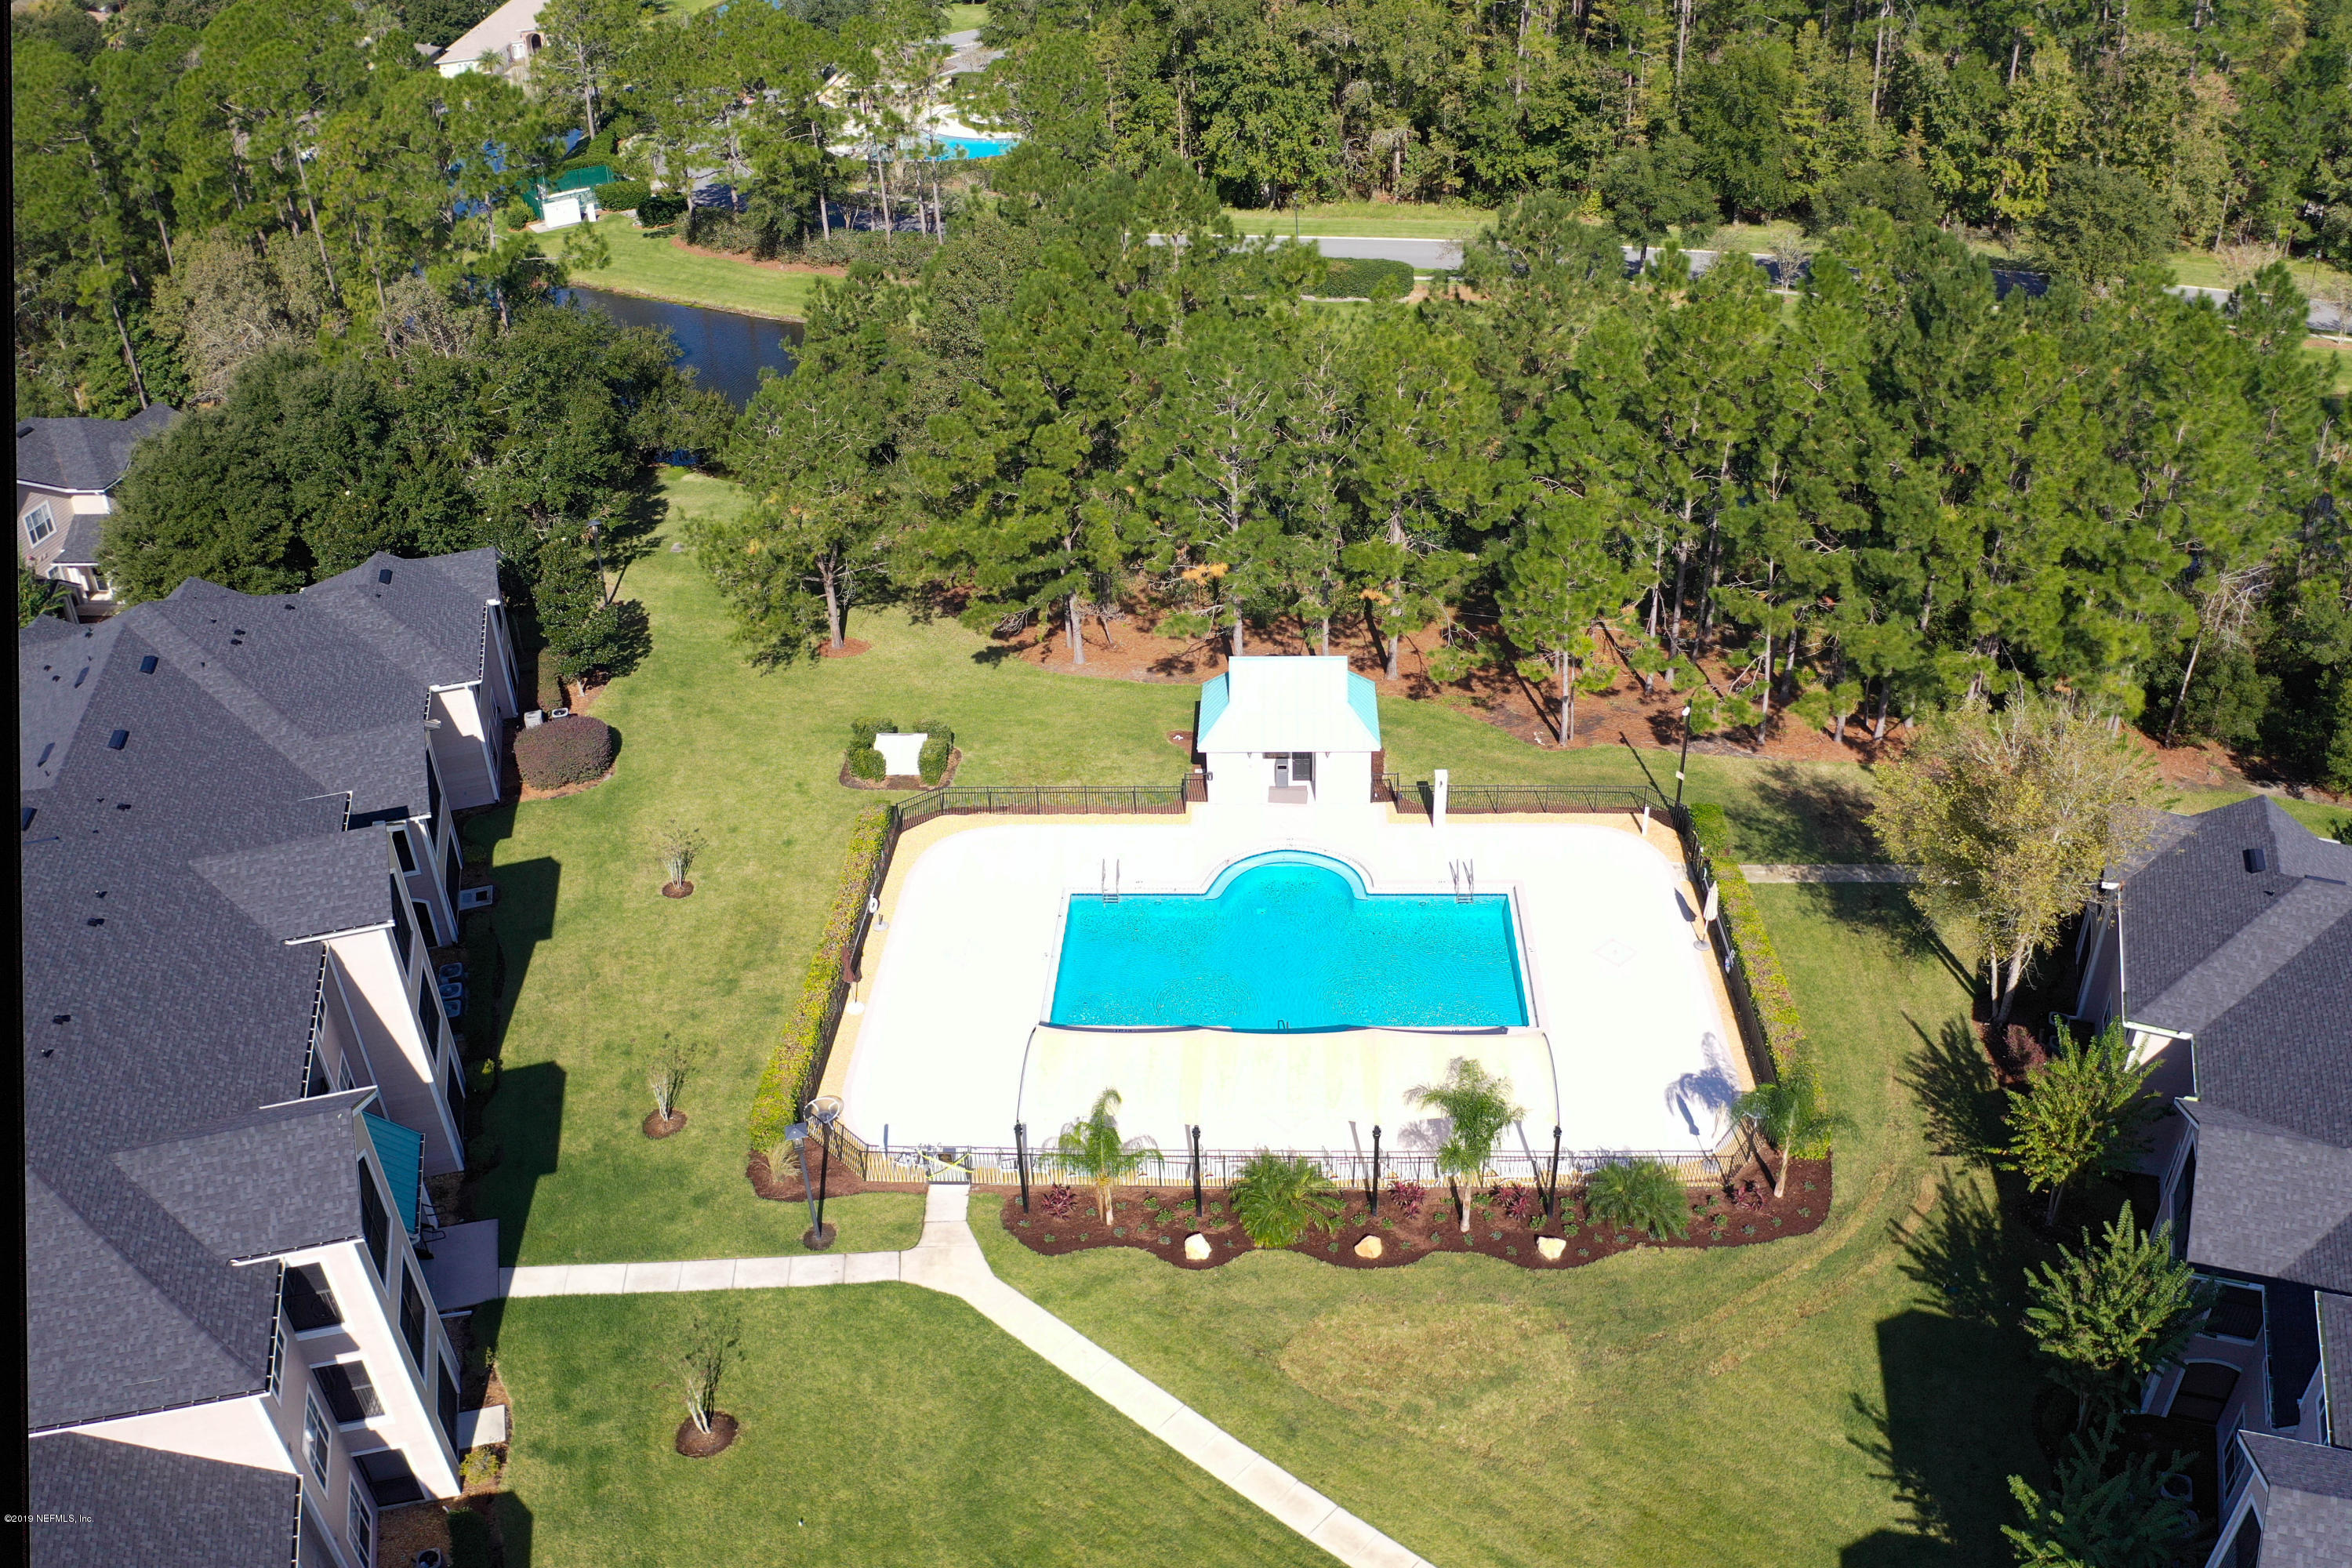 120 LEGENDARY, ST AUGUSTINE, FLORIDA 32092, 2 Bedrooms Bedrooms, ,2 BathroomsBathrooms,For sale,LEGENDARY,1025697